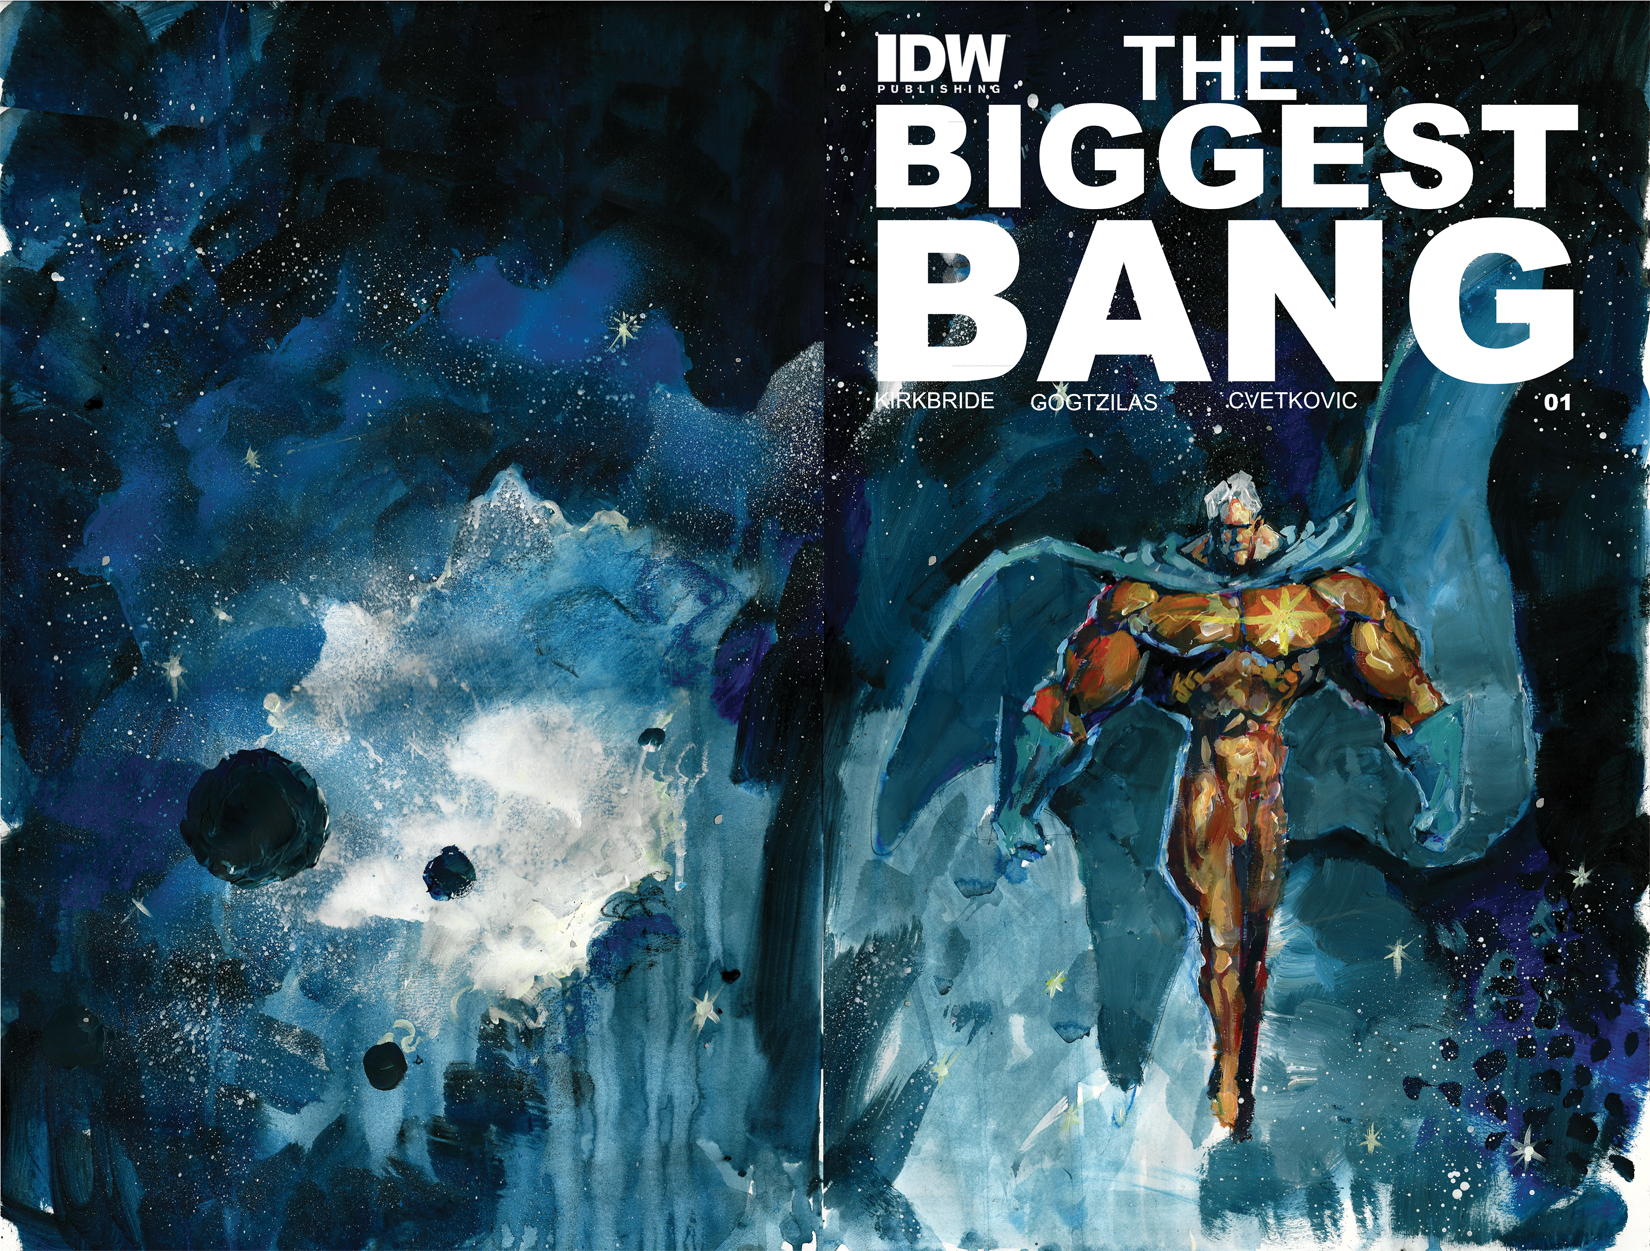 9b the biggest bang cover 1 f.jpg